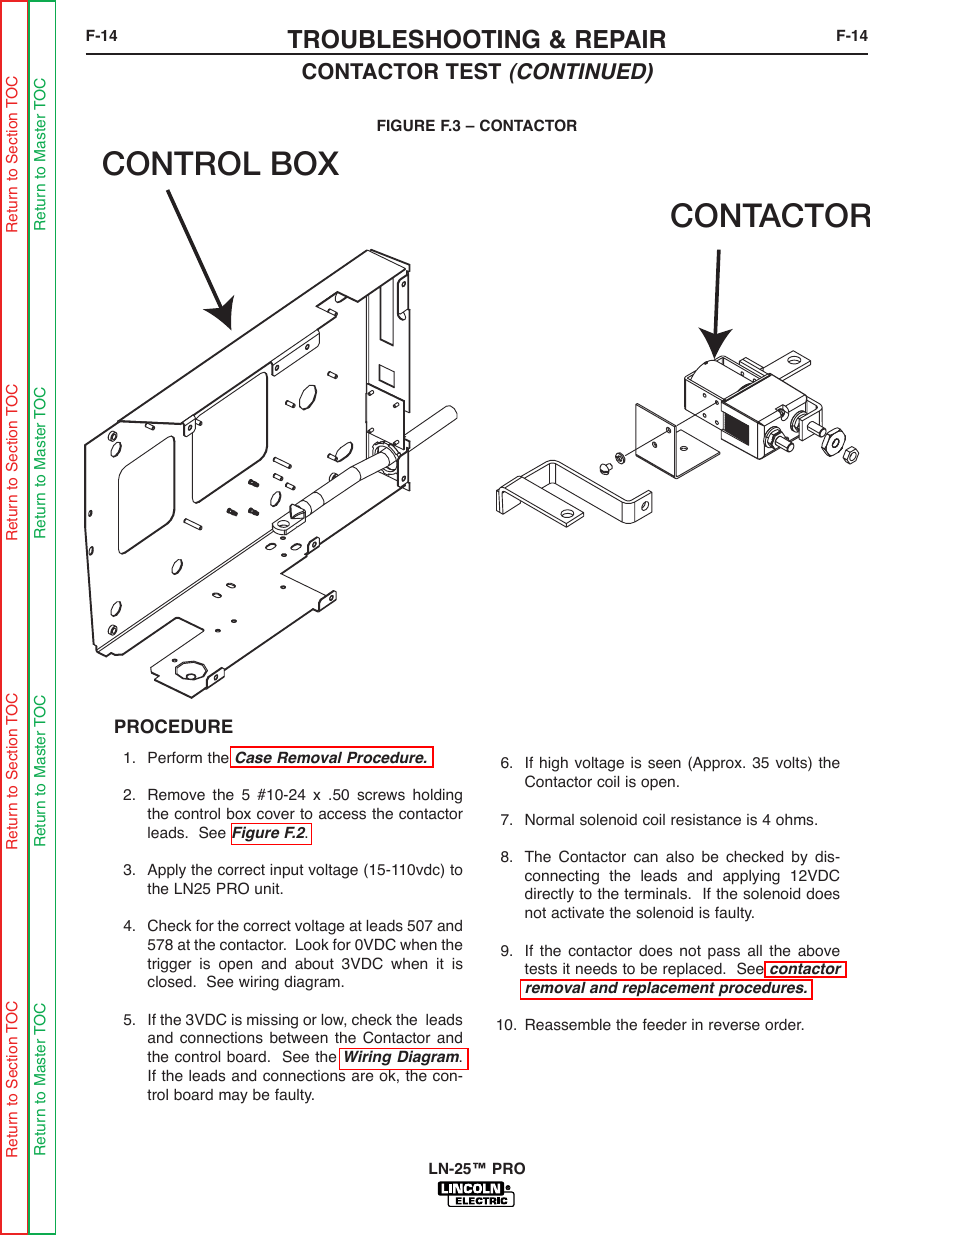 hight resolution of contactor control box troubleshooting repair contactor test continued lincoln electric ln 25 svm179 b user manual page 58 103